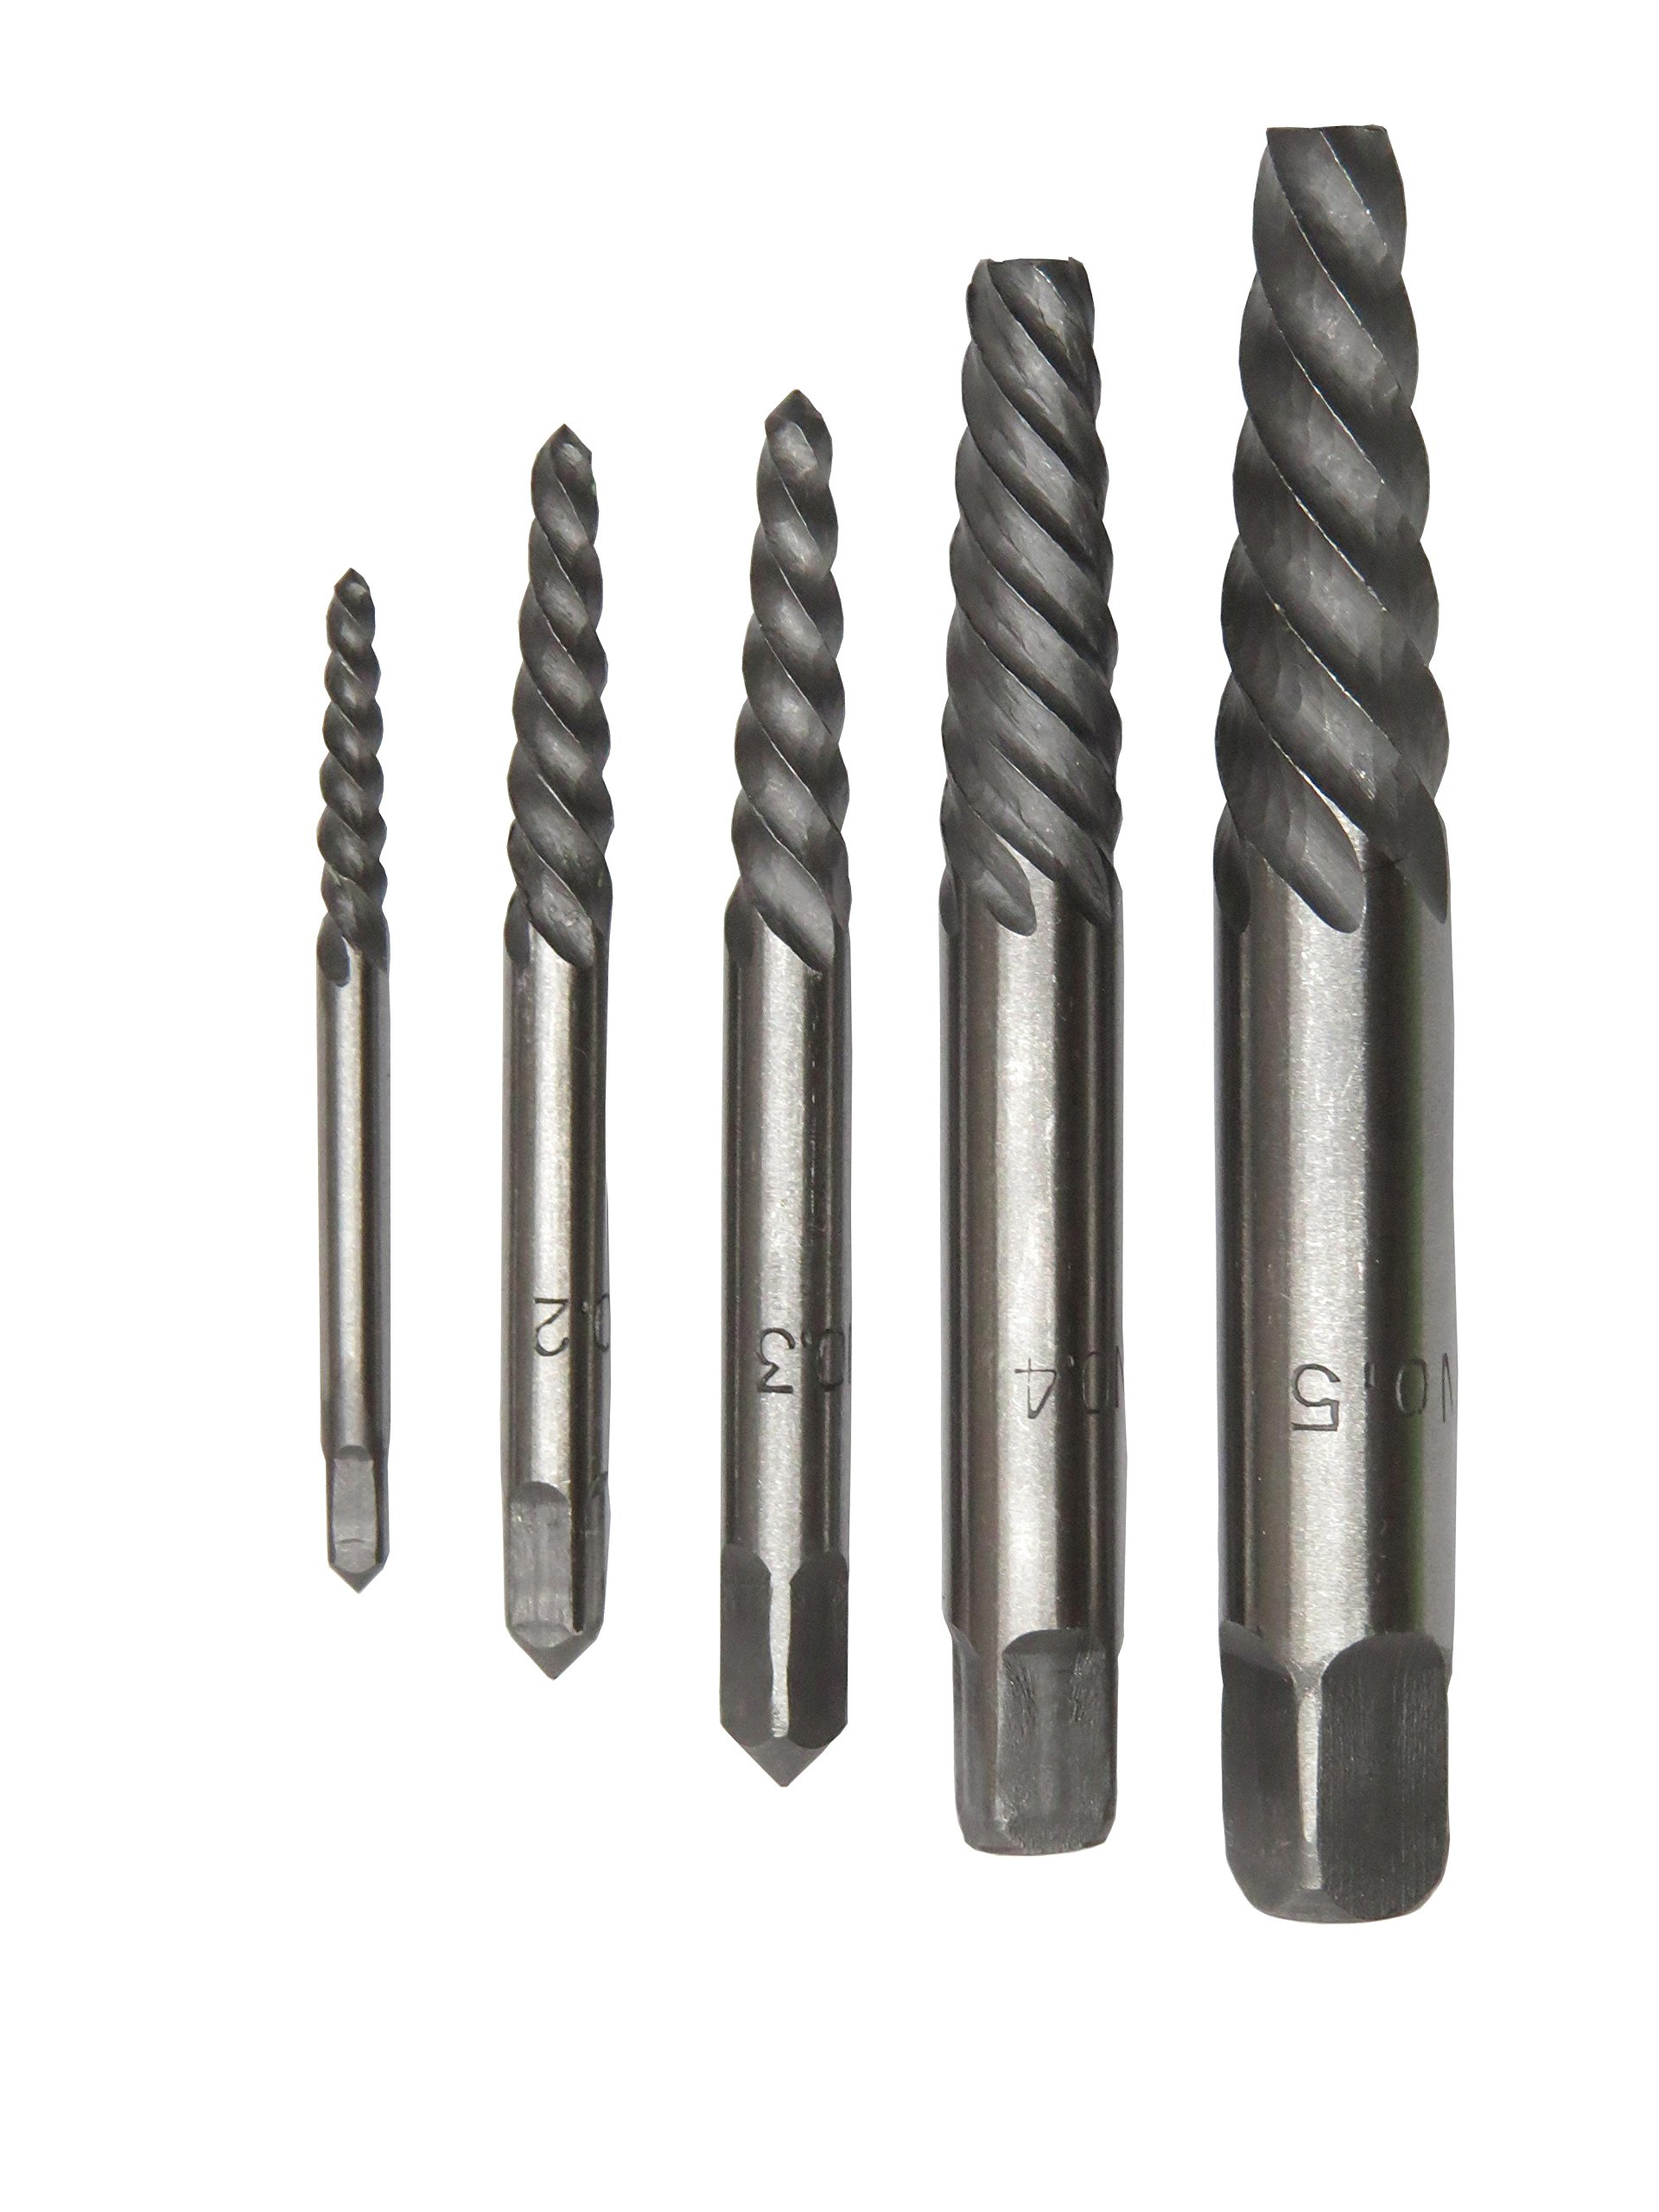 Drill America DEWEZS1-5 Qualtech Screw Extractor Set, 1-5 Size (Pack of 1)